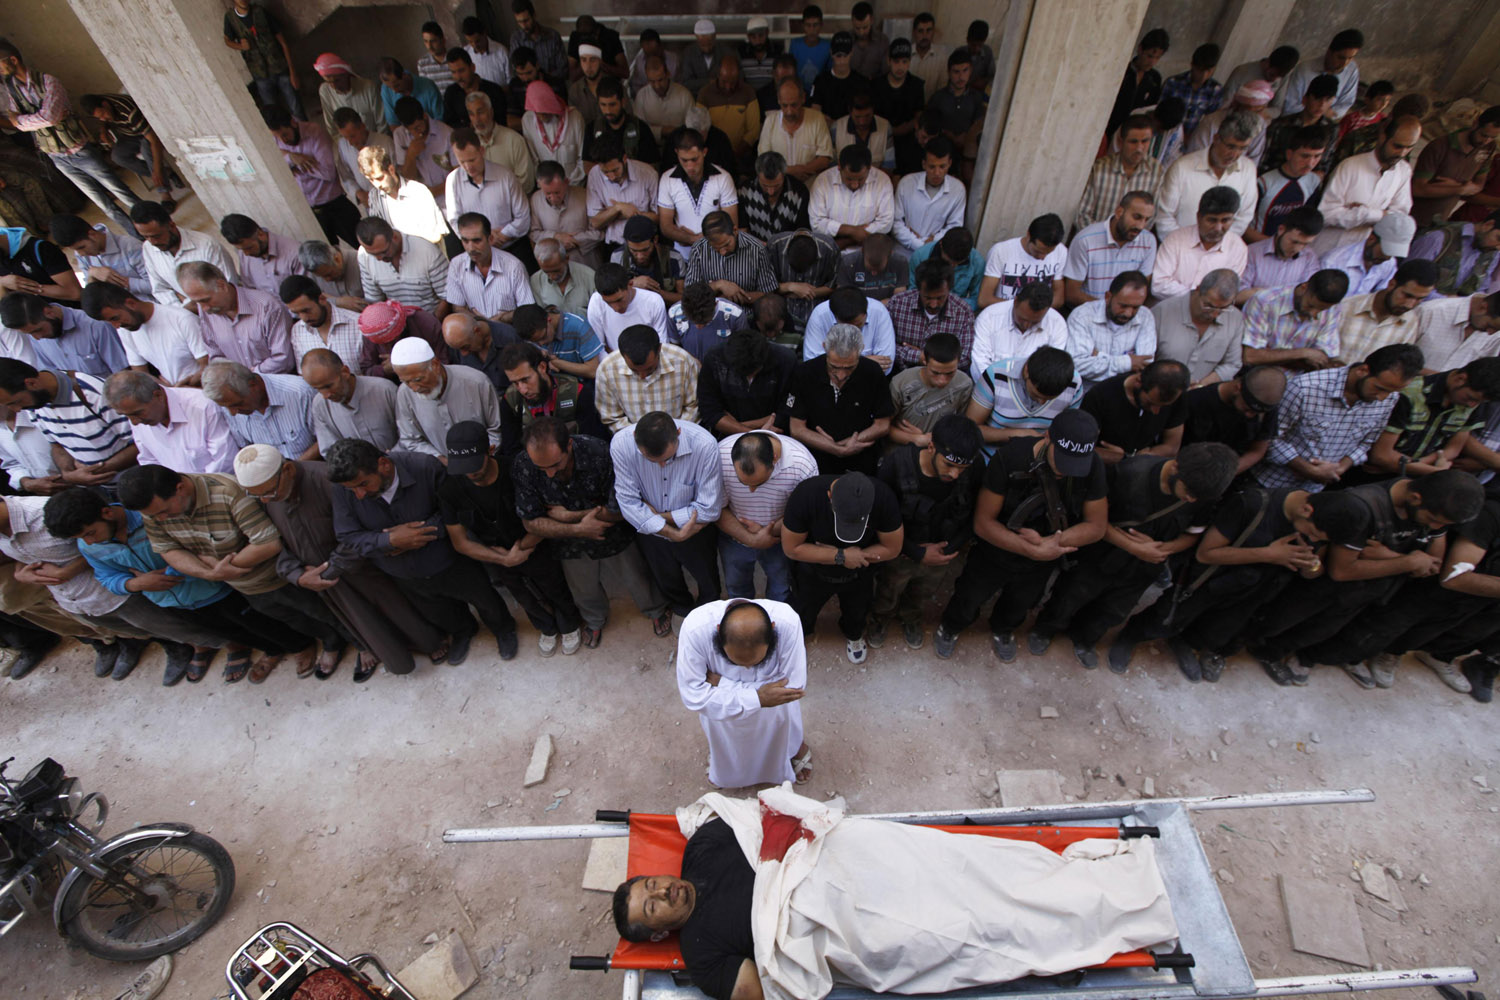 Sept. 17, 2012. Civilians and Islamist fighters pray over the body of Tareq Naser, an Islamist fighter who died during clashes, during his funeral near the village of Fafeen near Aleppo, Syria.